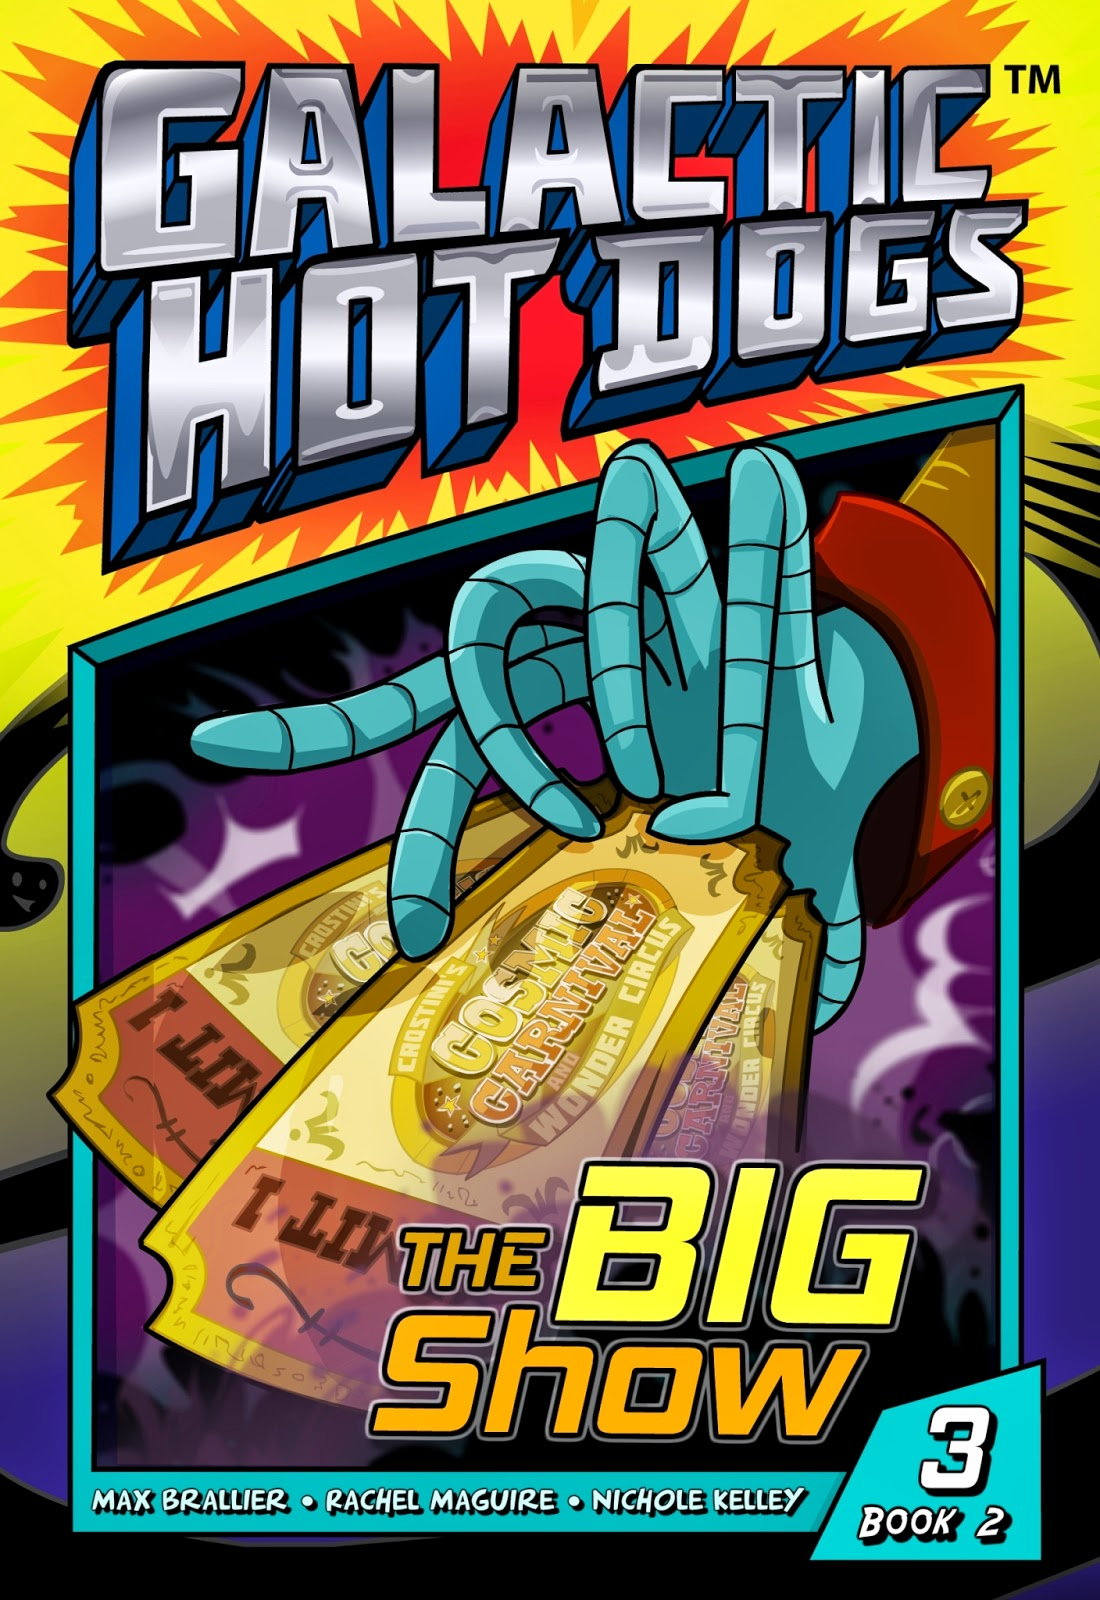 Galactic Hot Dogs: Book 2 -- Chapter 3 -- The Big Show